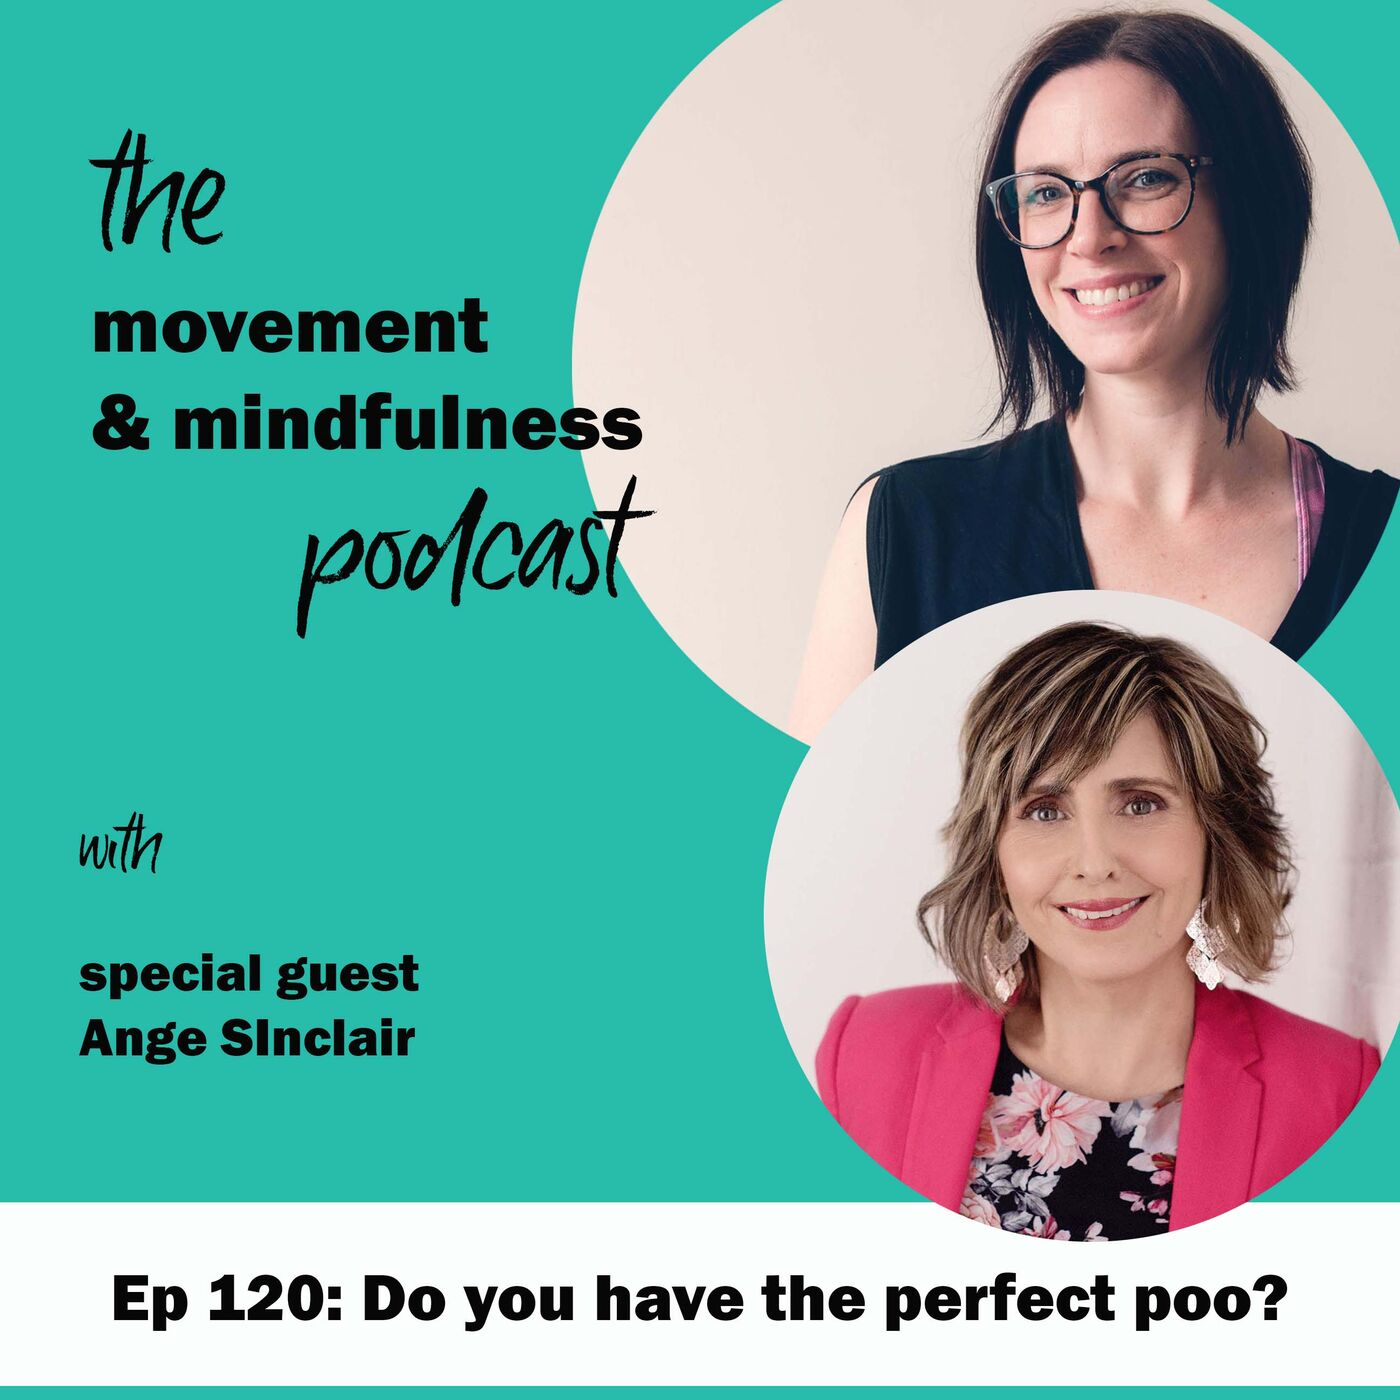 Ep 120: Do you have the perfect poo? with Ange Sinclair